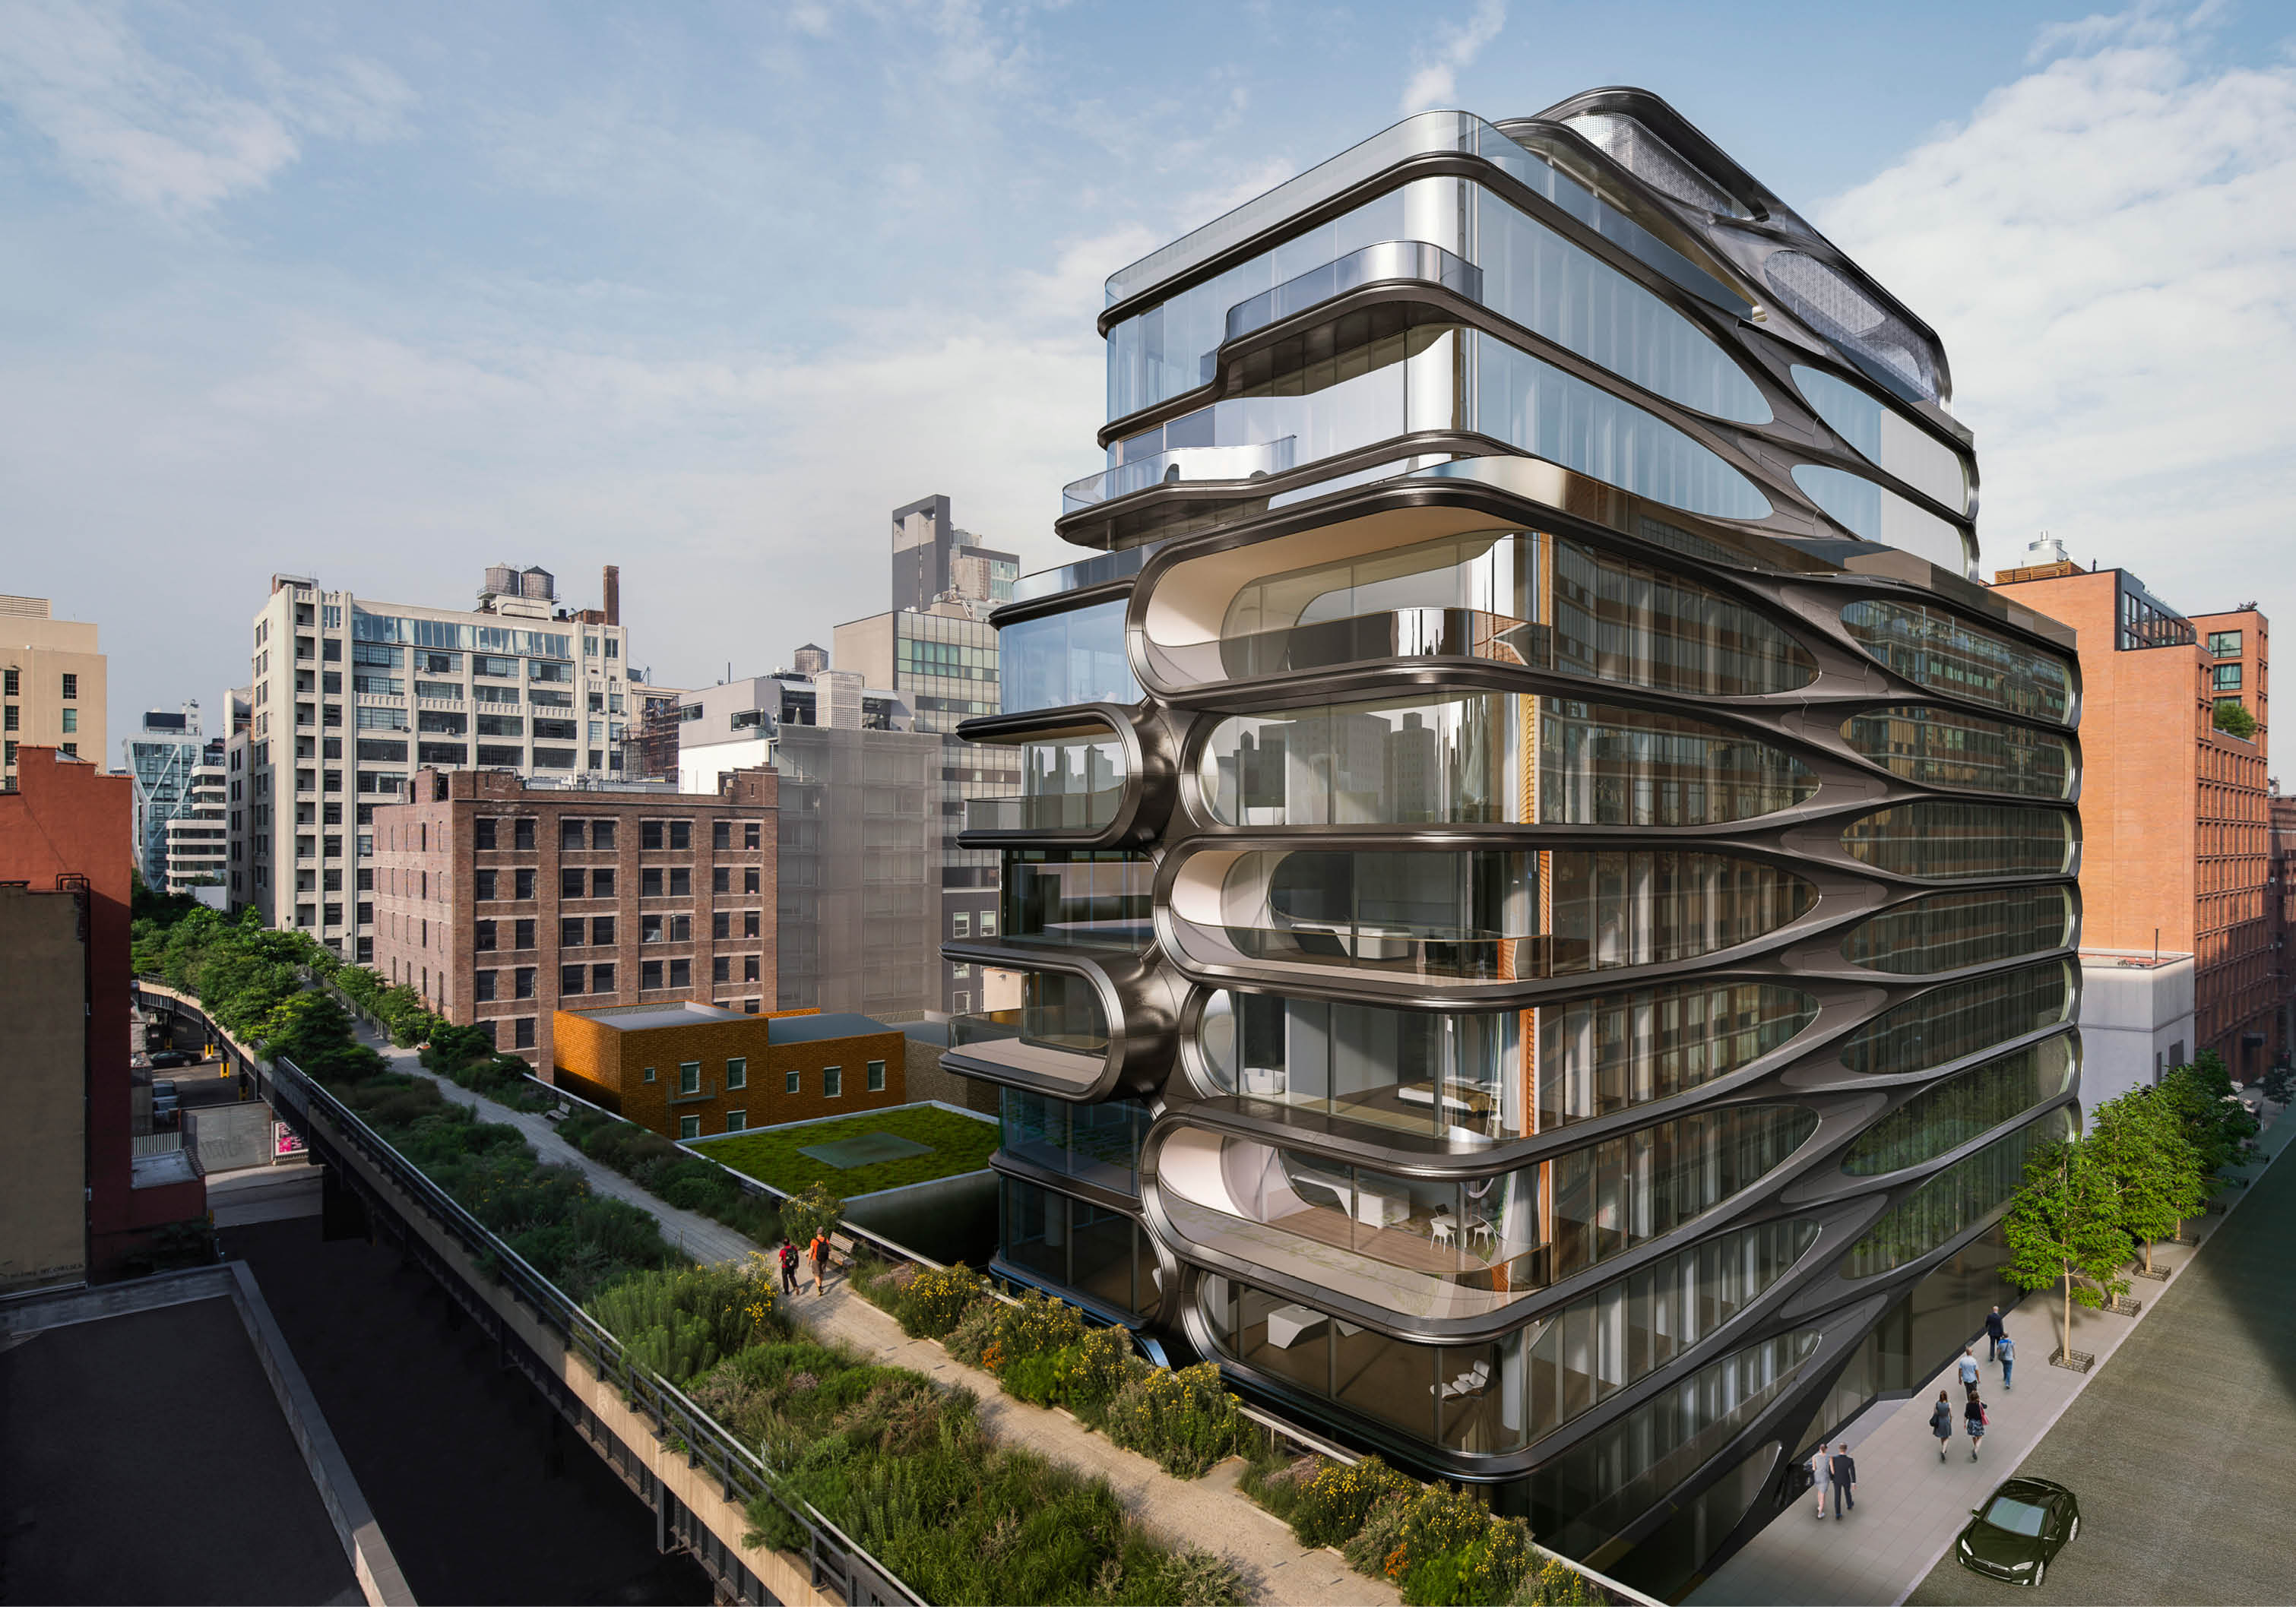 http://content.related.com/520 West 28th Condominium